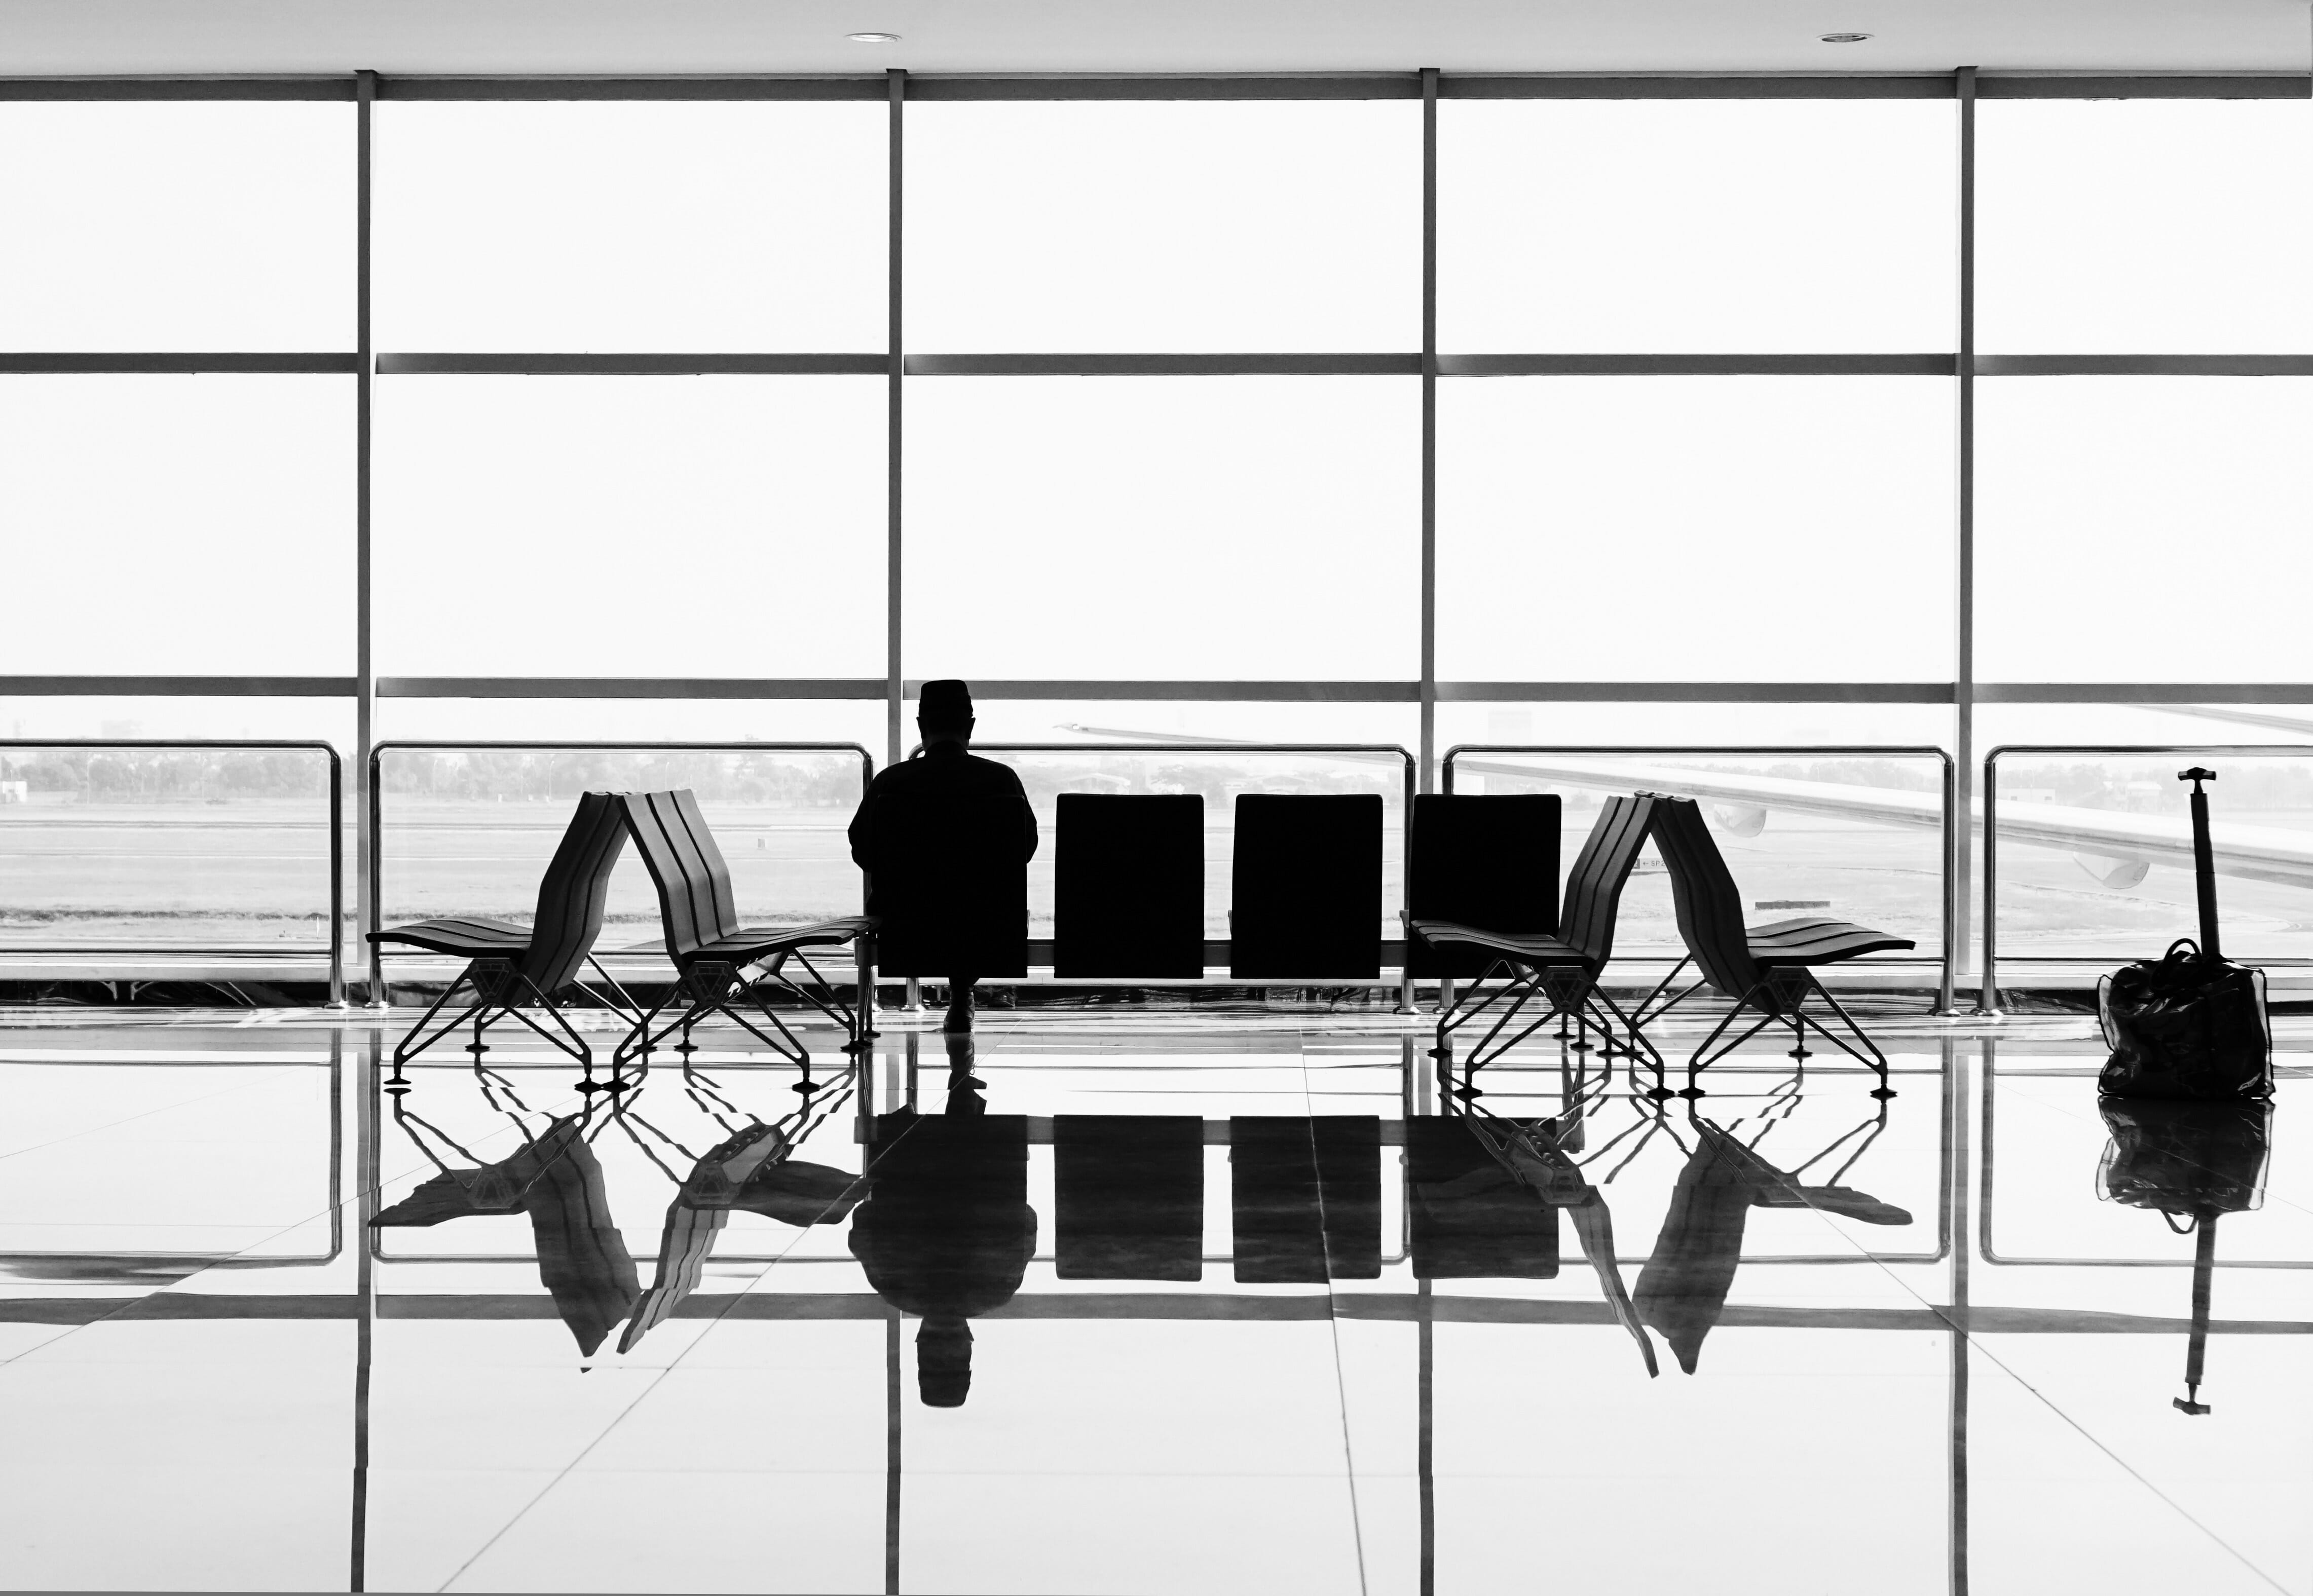 Black and White image of a man waiting at an airport in Adelaide Free Wifi on his phone